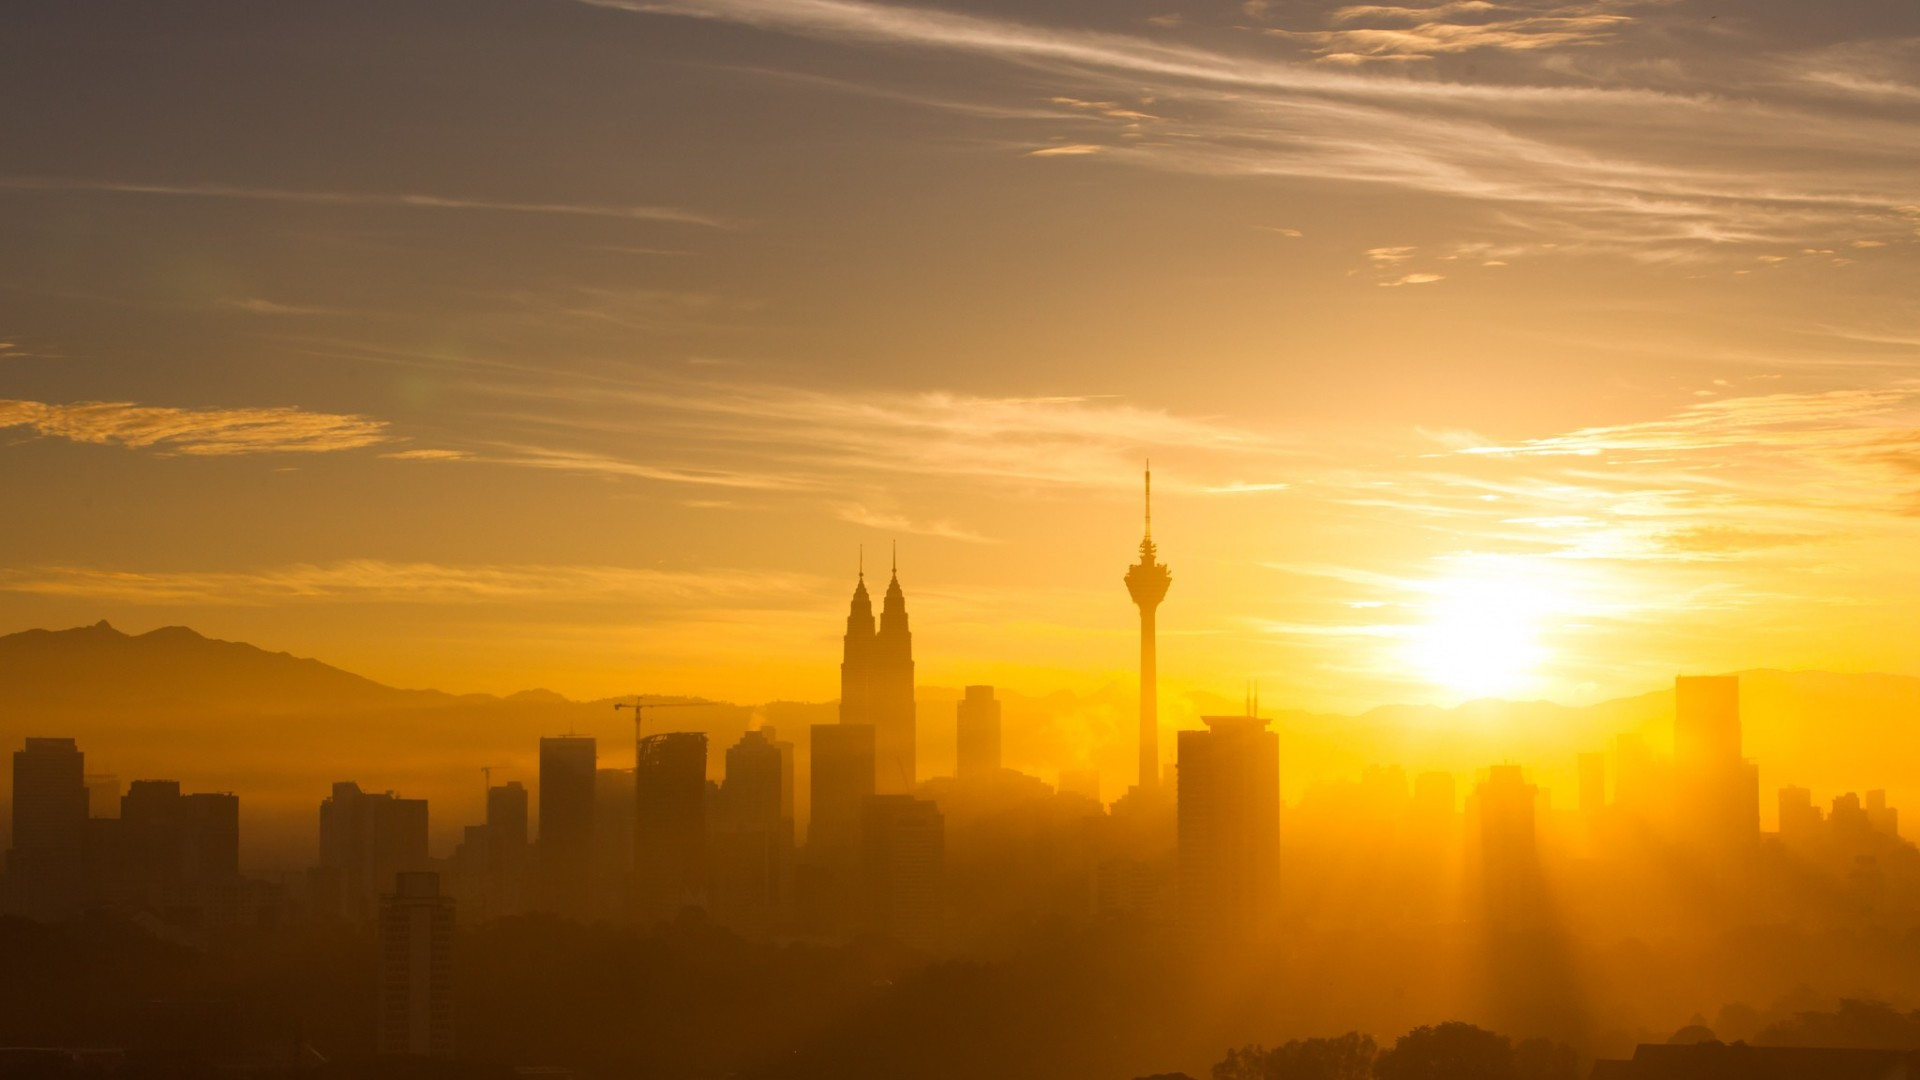 Malaysia wallpapers best wallpapers for Beautiful wallpaper